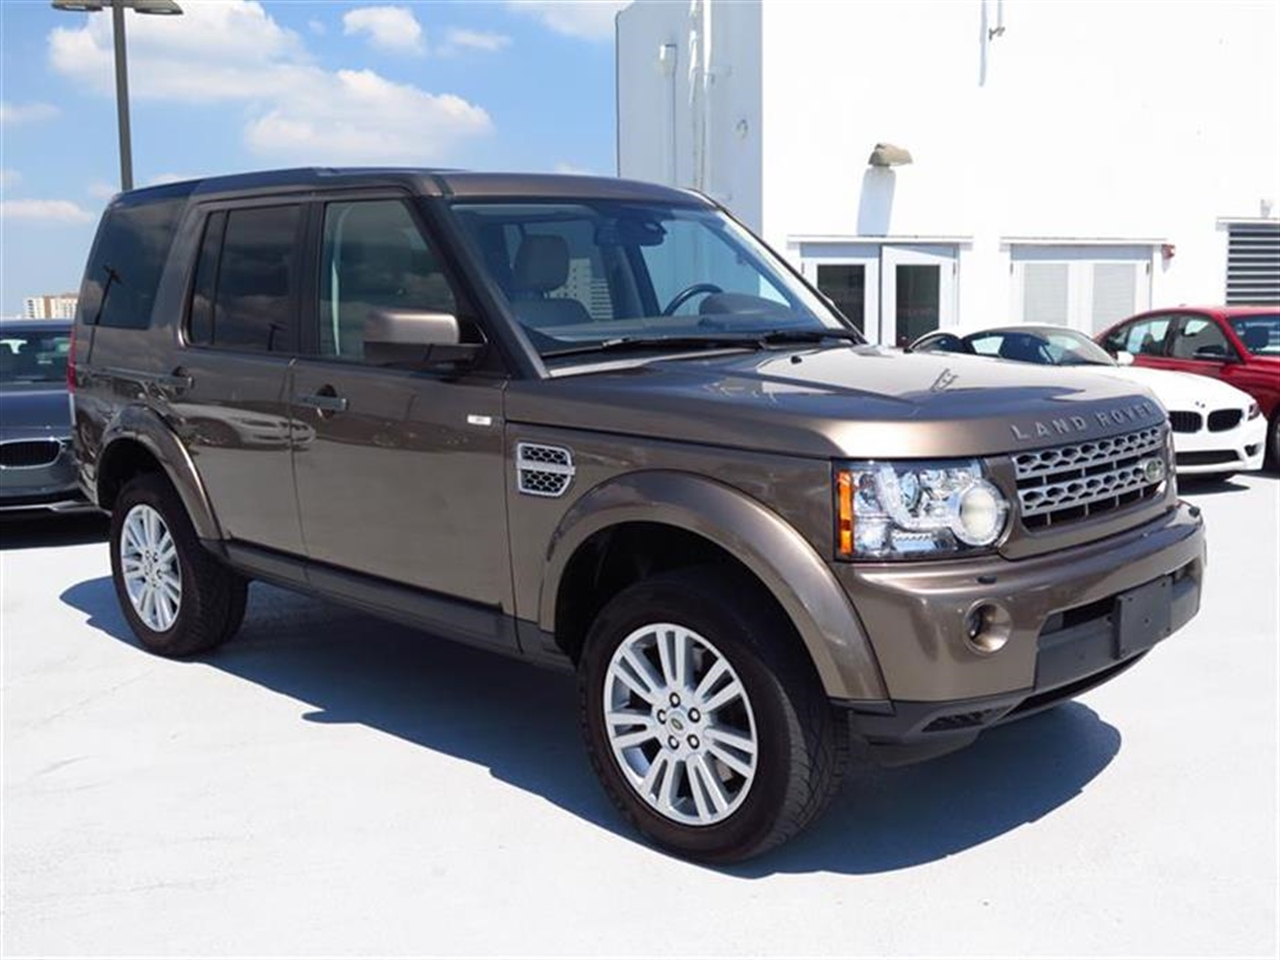 2010 LAND ROVER LR4 4WD 4dr V8 HSE 55657 miles Noble Finish interior accents 4x4 driver info sys